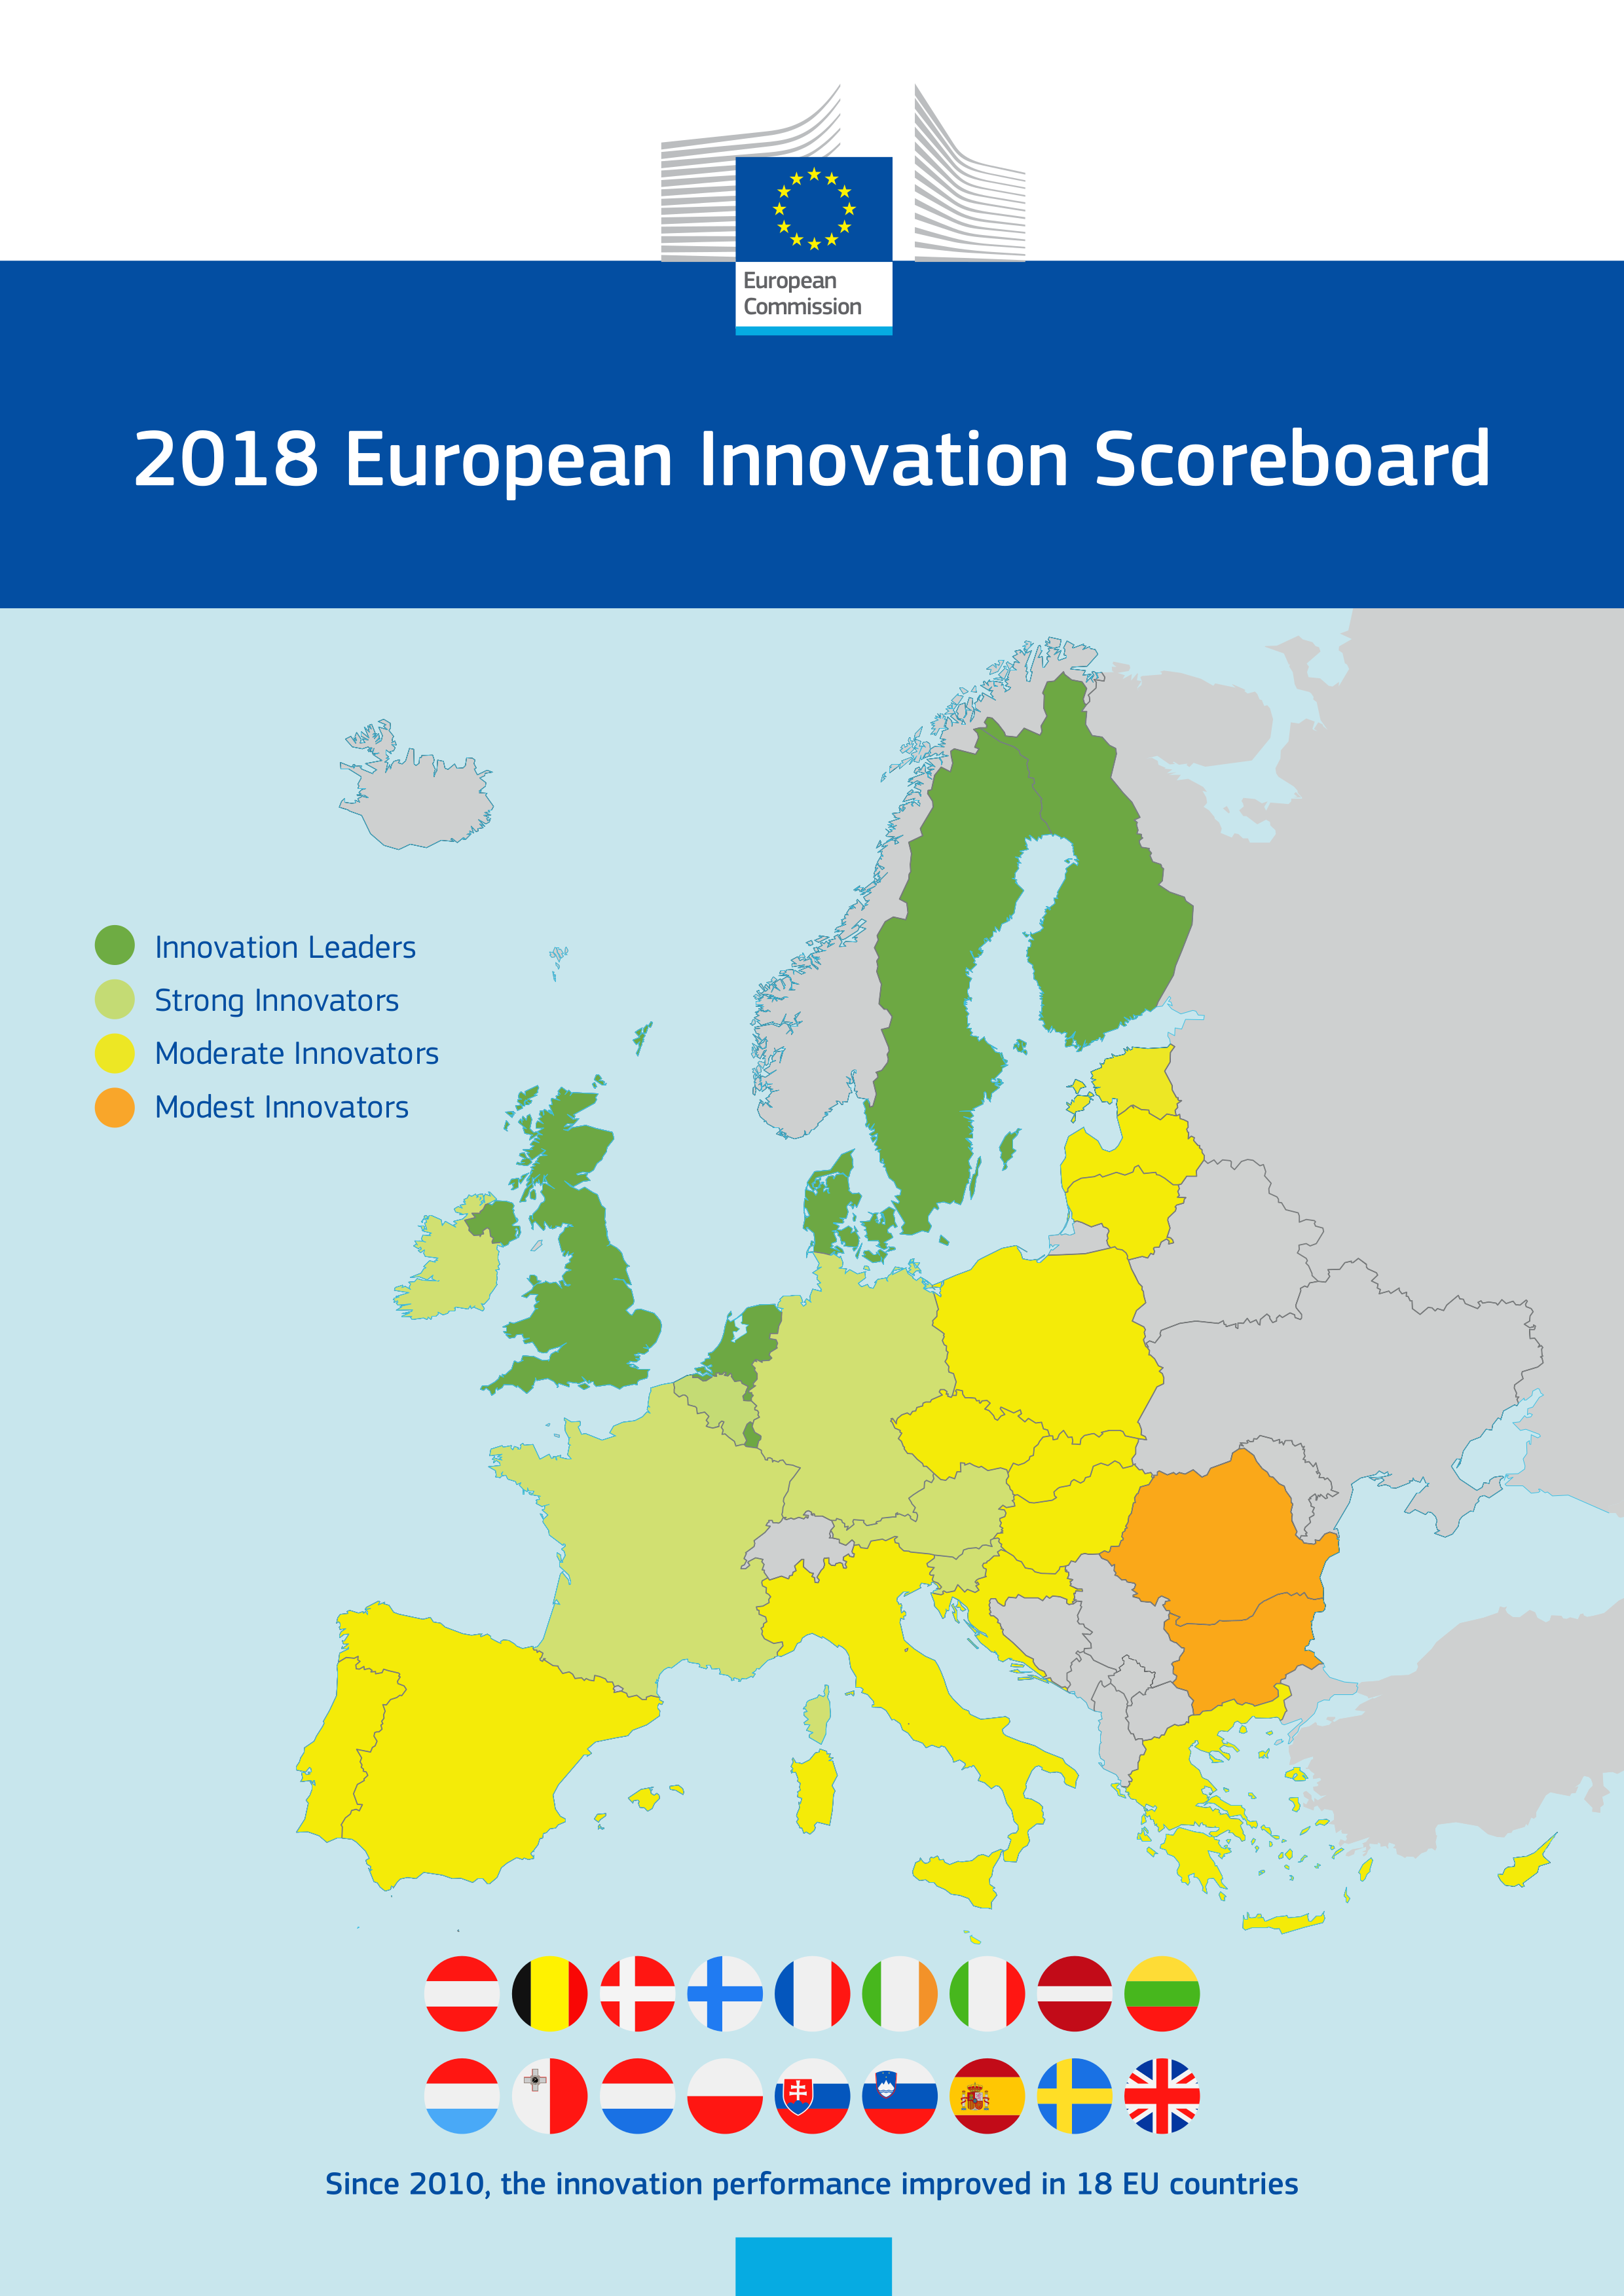 infographic-innovation-scoreboard-2018-map-full-size